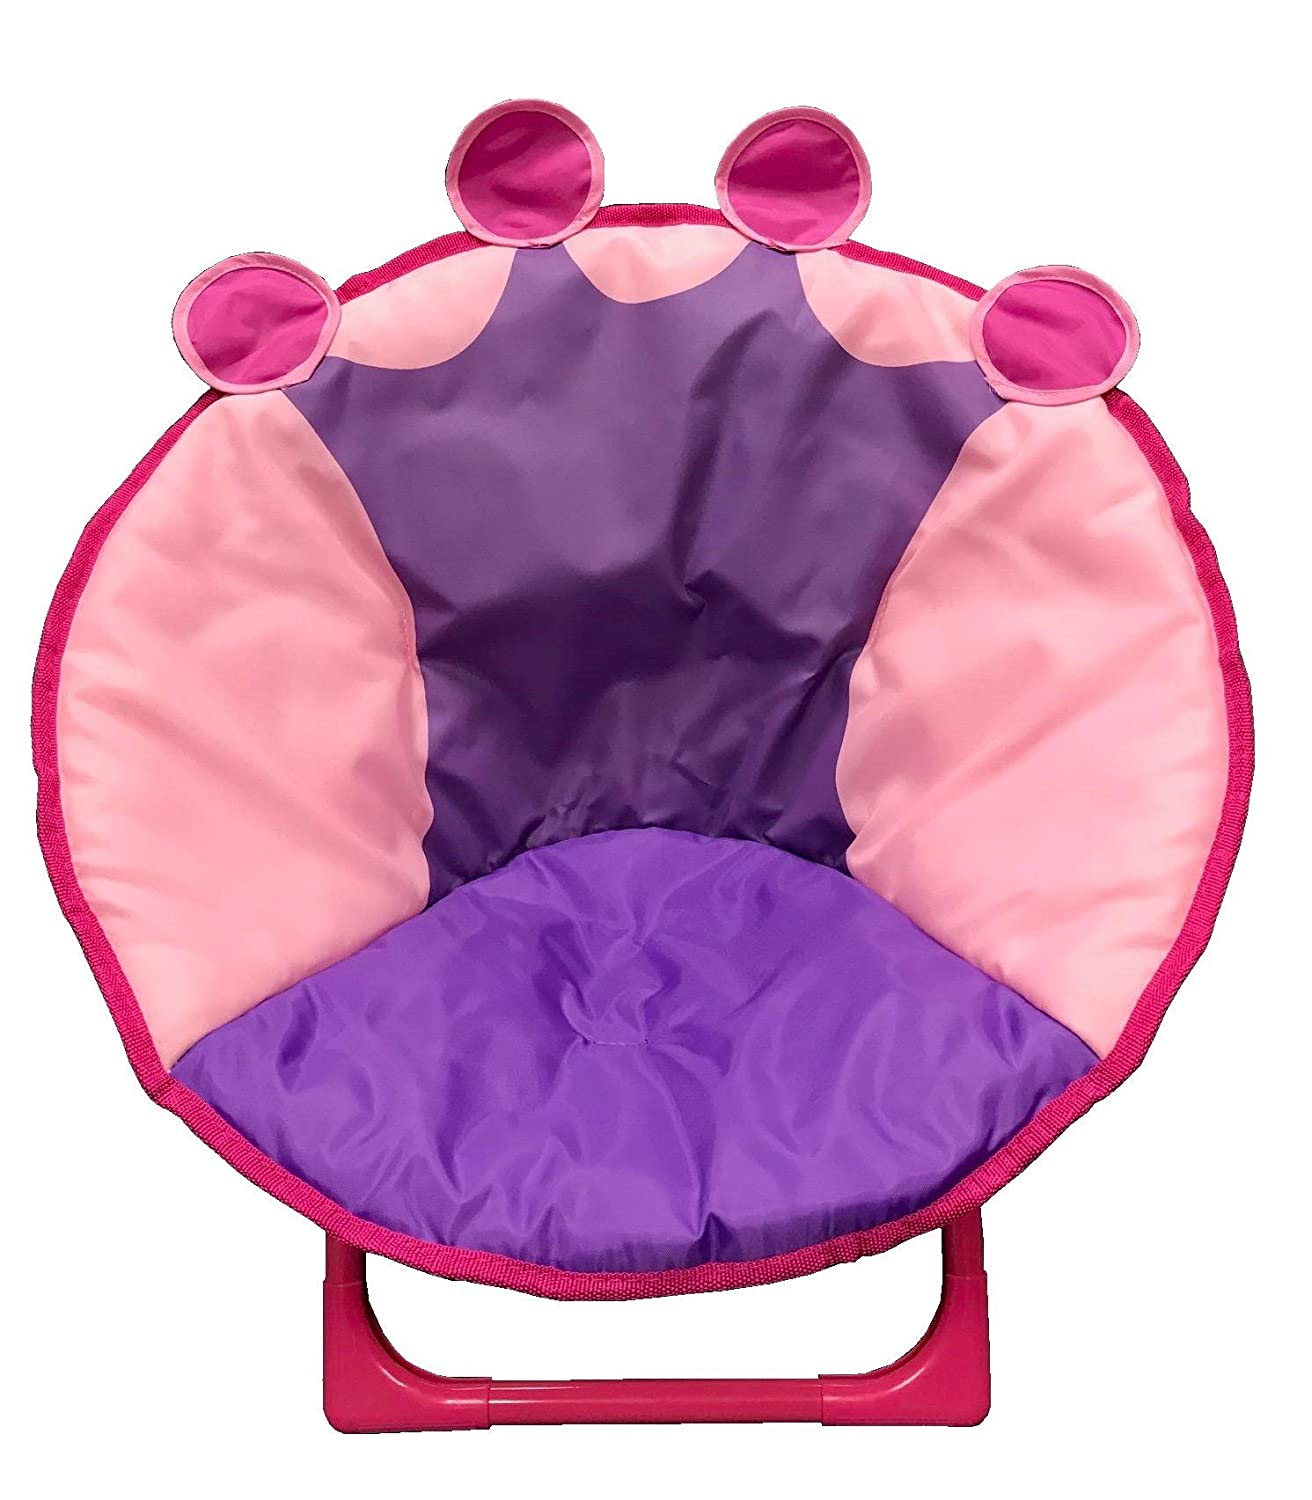 just4baby Kids Children Foldable Bedroom Play Room Moon Chair Moonchair CROWN Design